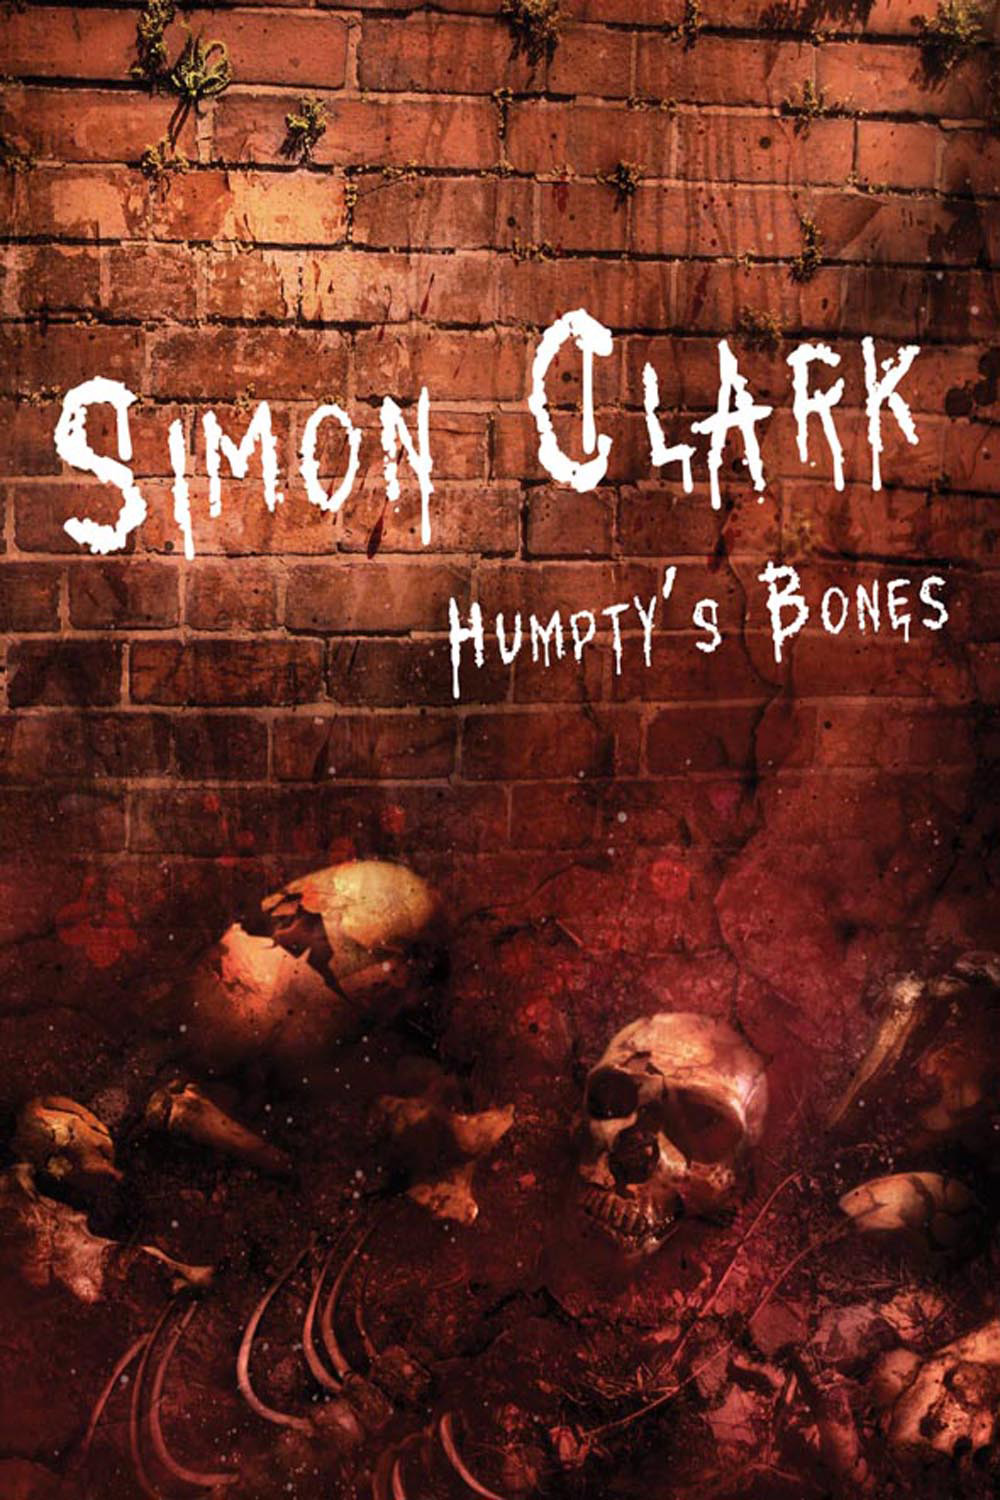 Humpty's Bones By: Simon Clark